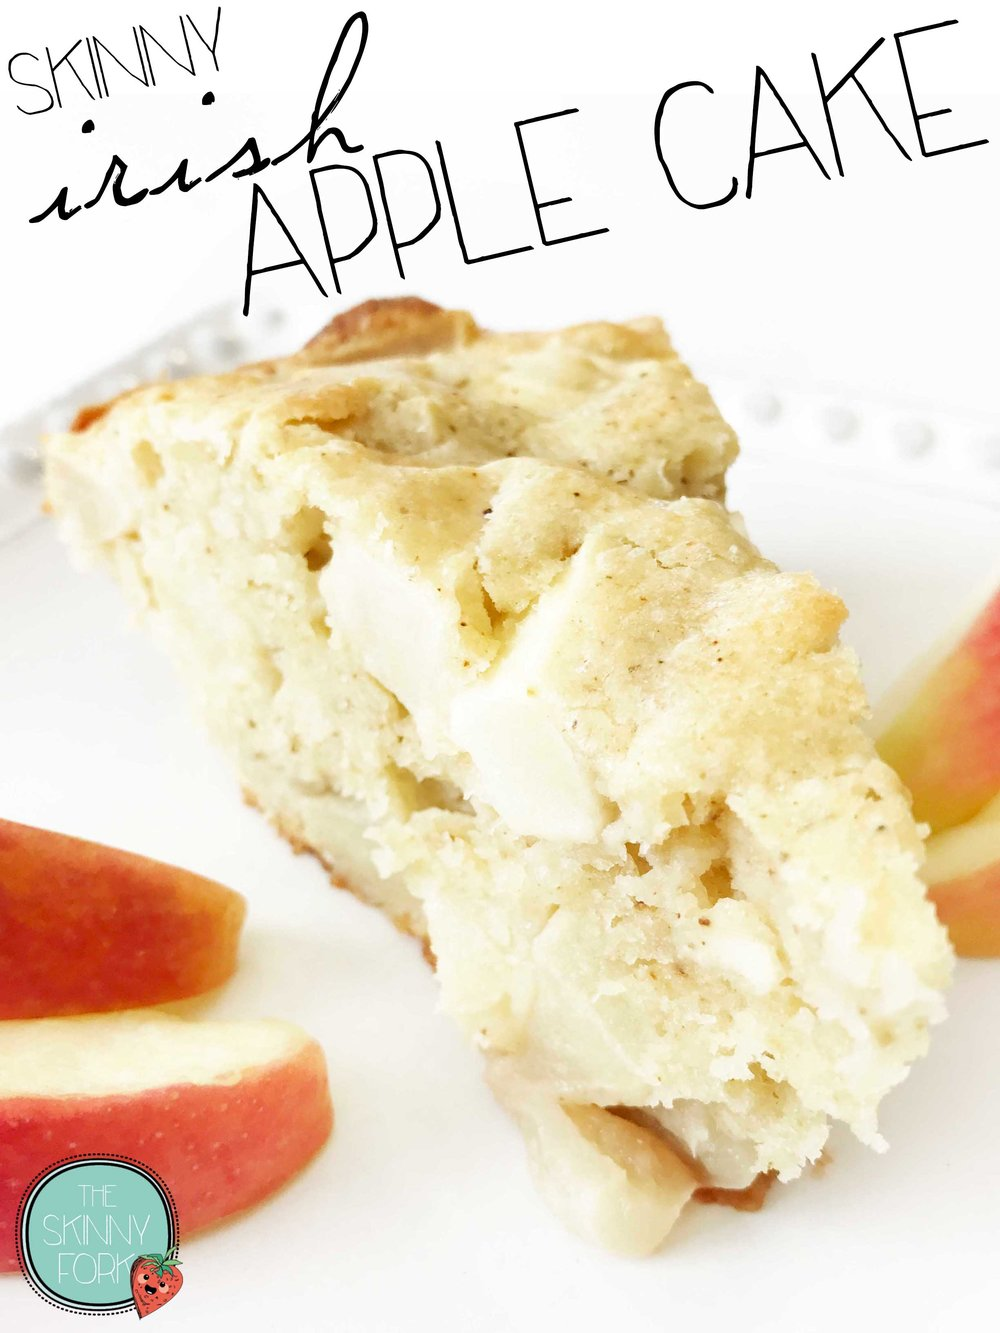 irish-apple-cake-pin.jpg